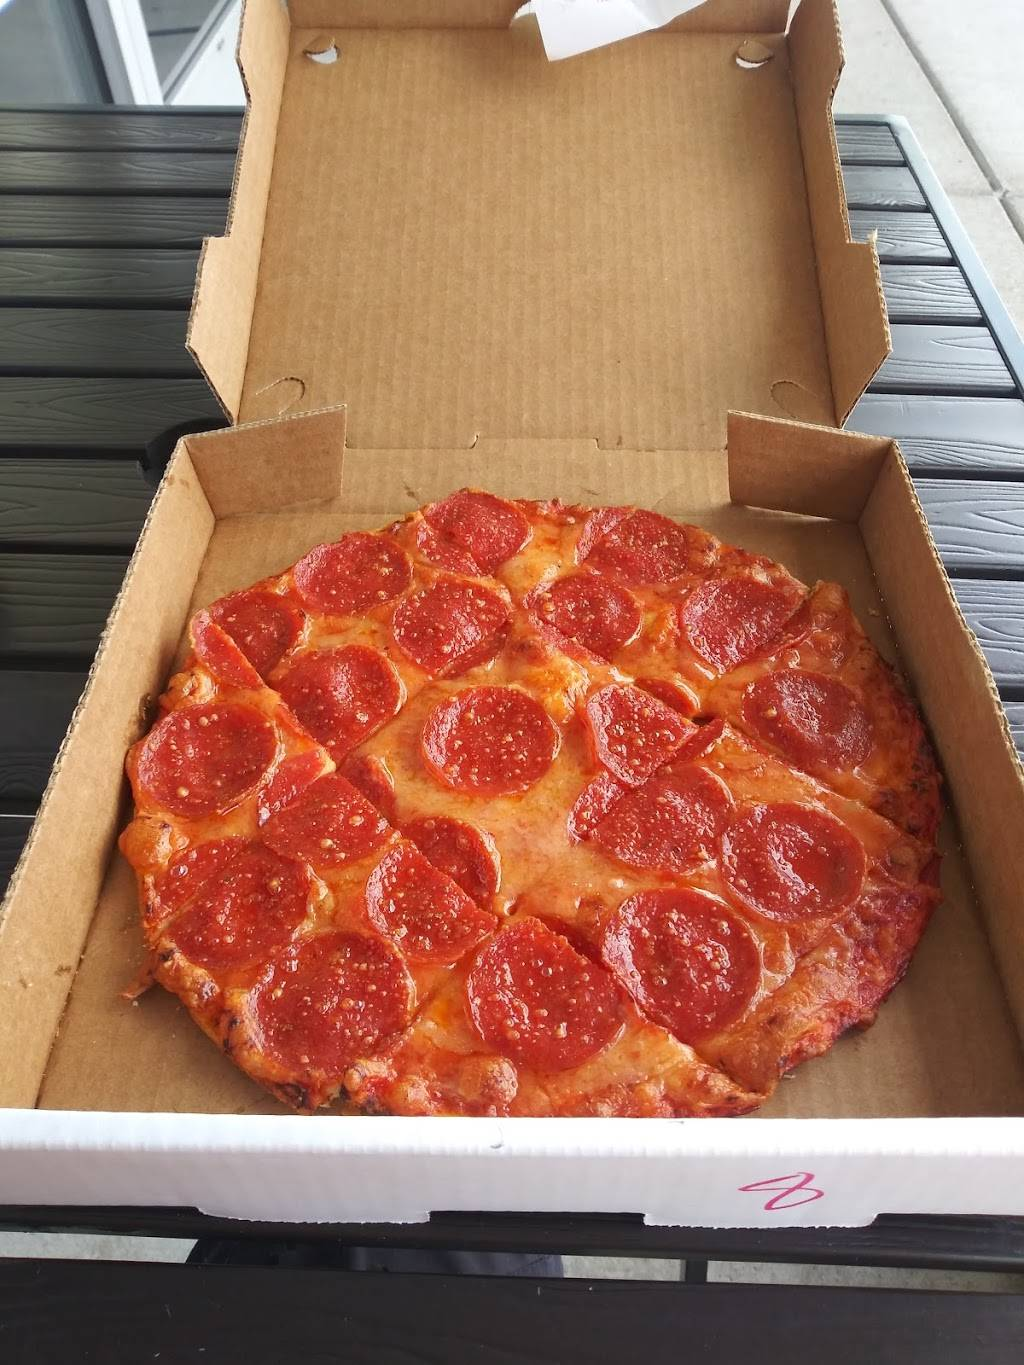 St. Louis Pizza & Wings Affton | restaurant | 8013 MacKenzie Rd, Affton, MO 63123, USA | 3146313800 OR +1 314-631-3800